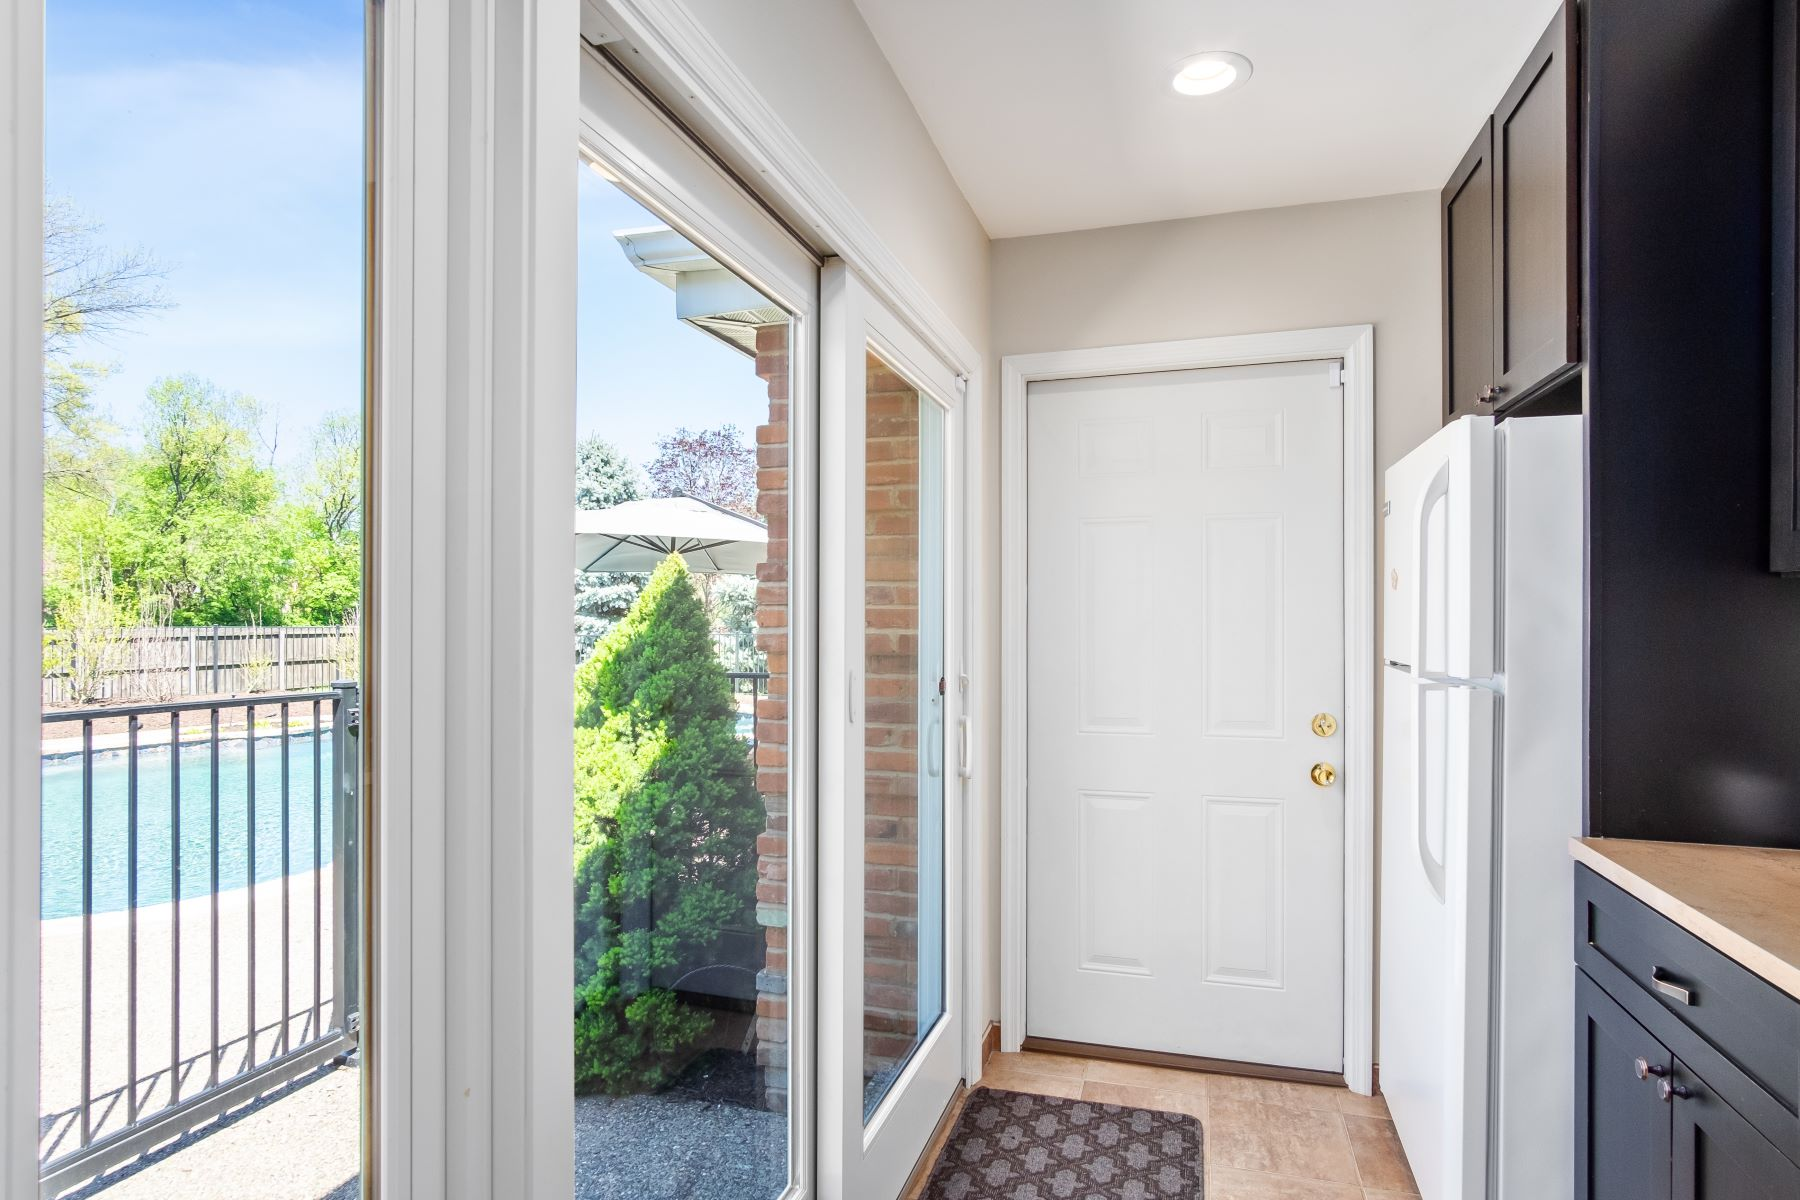 Additional photo for property listing at Urban Living in CWE with Suburban Amenities 5337 Lindell Boulevard St. Louis, Missouri 63112 United States